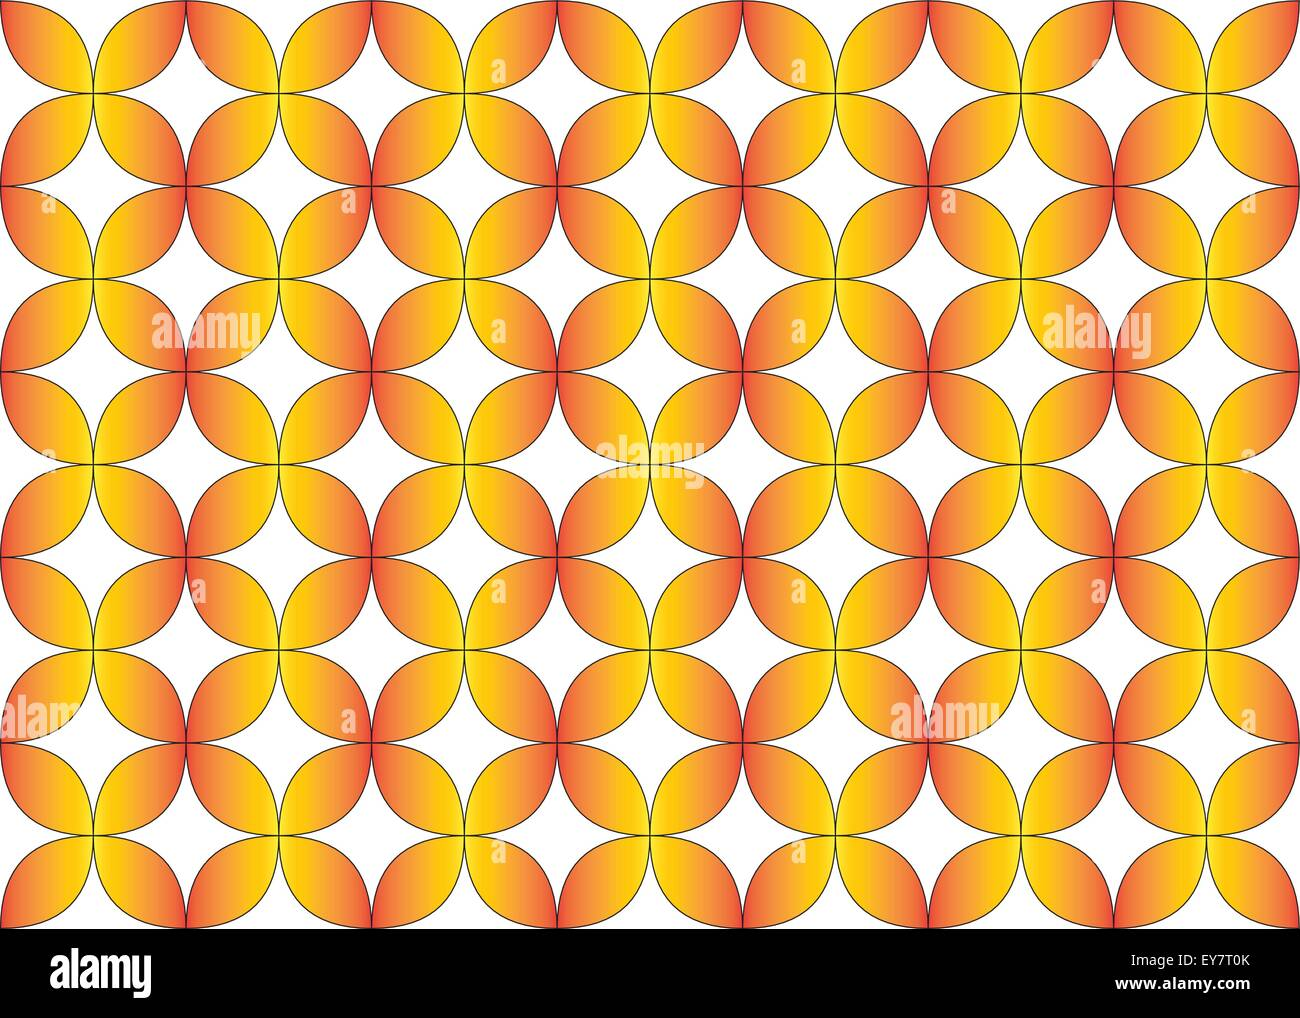 Seamless Geometric Repeat Pattern Of Flower Tessellation In Orange Yellow Gradient Fill Color